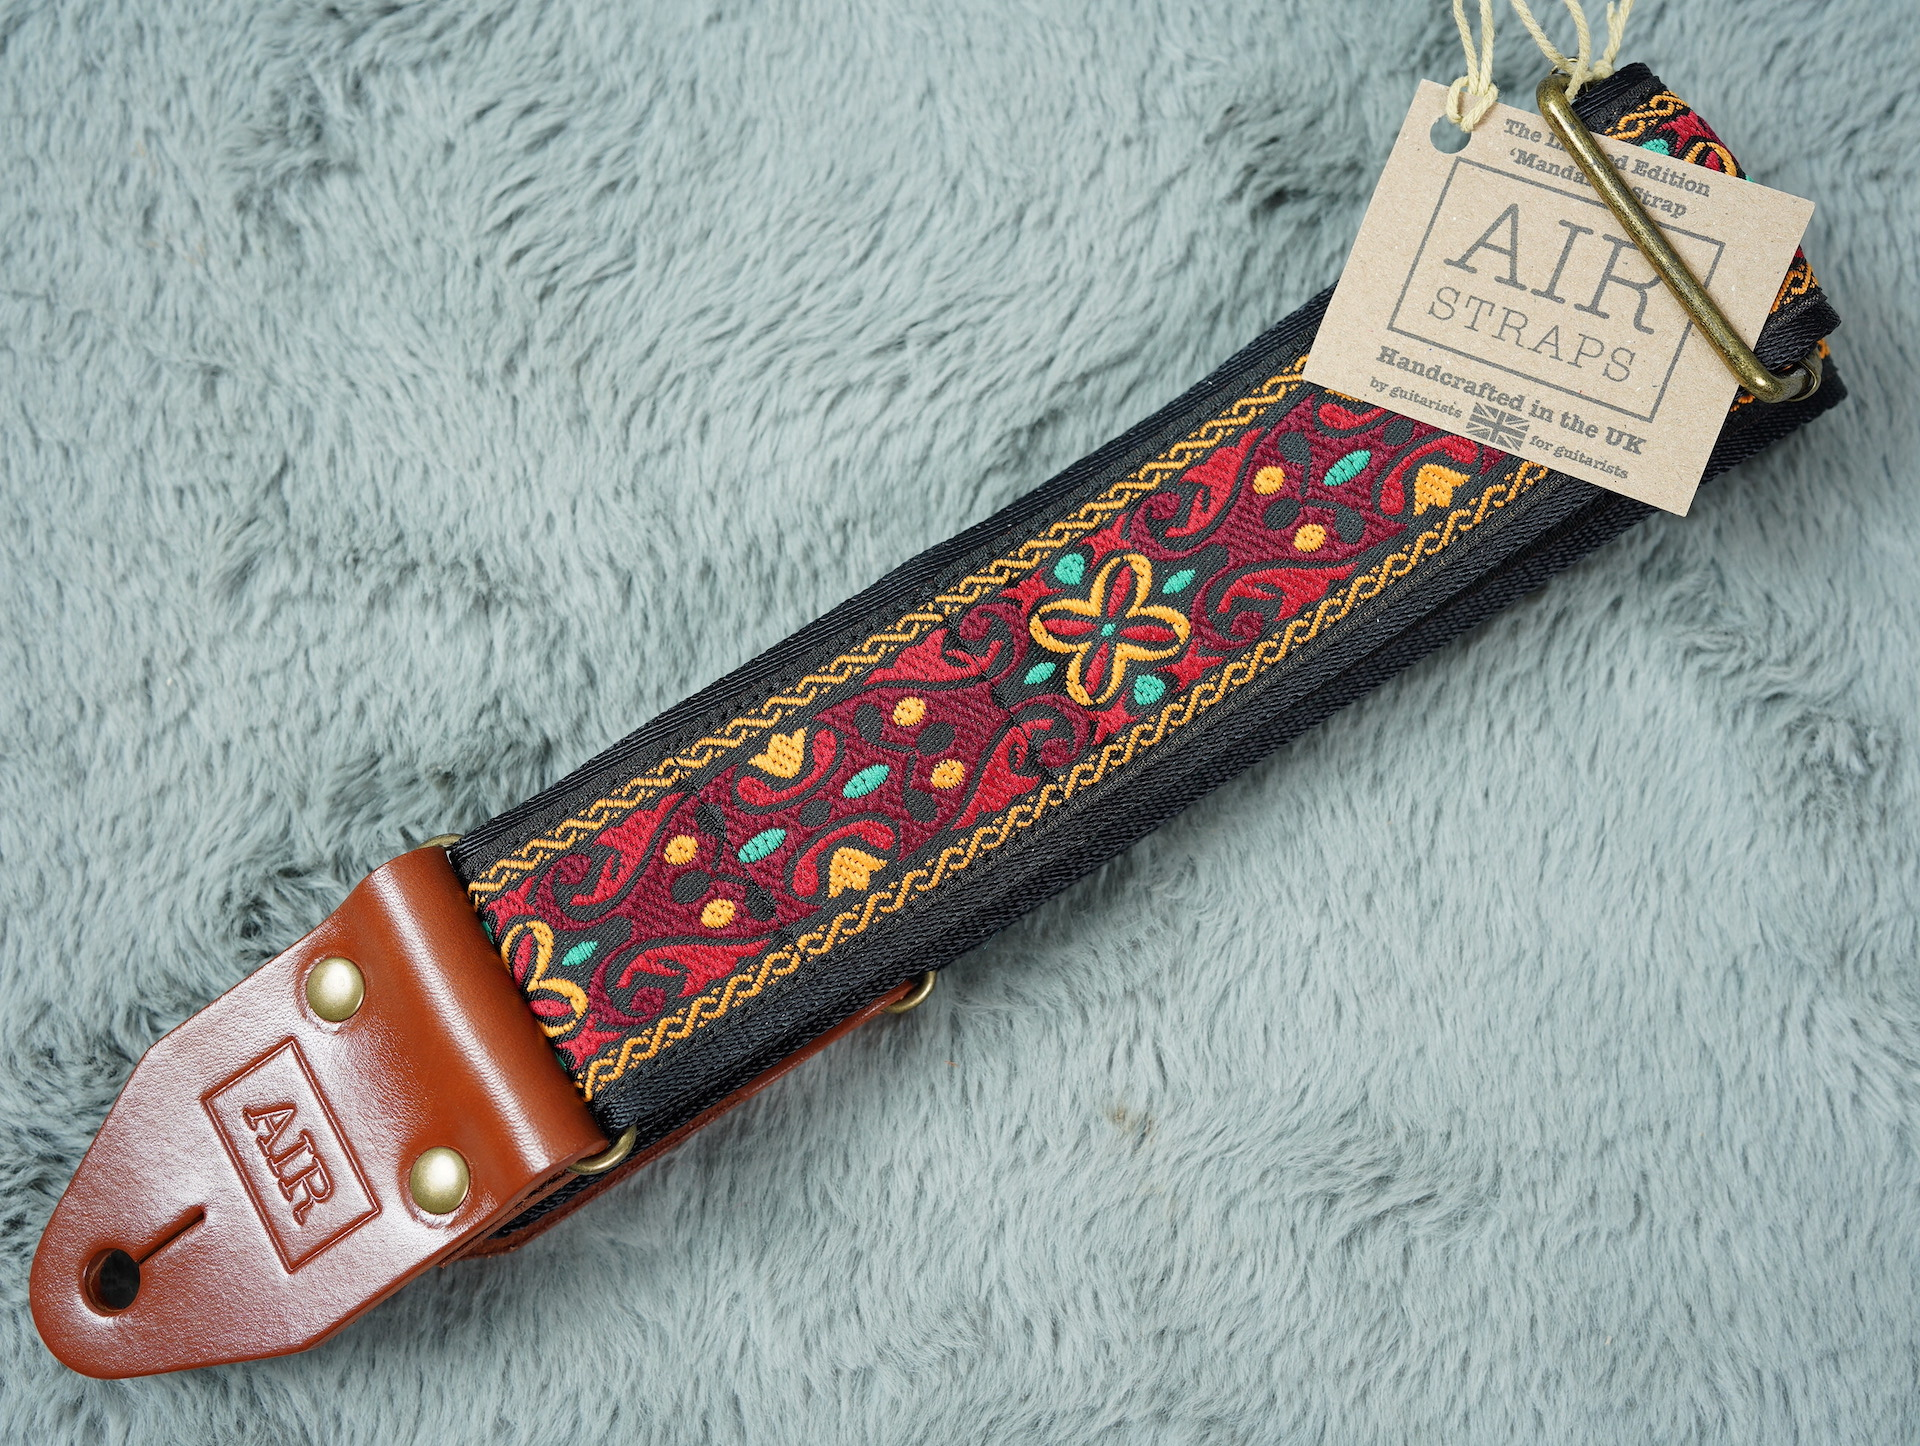 Air Straps Limited Edition 'Mandalay' Guitar Strap - Free Shipping!